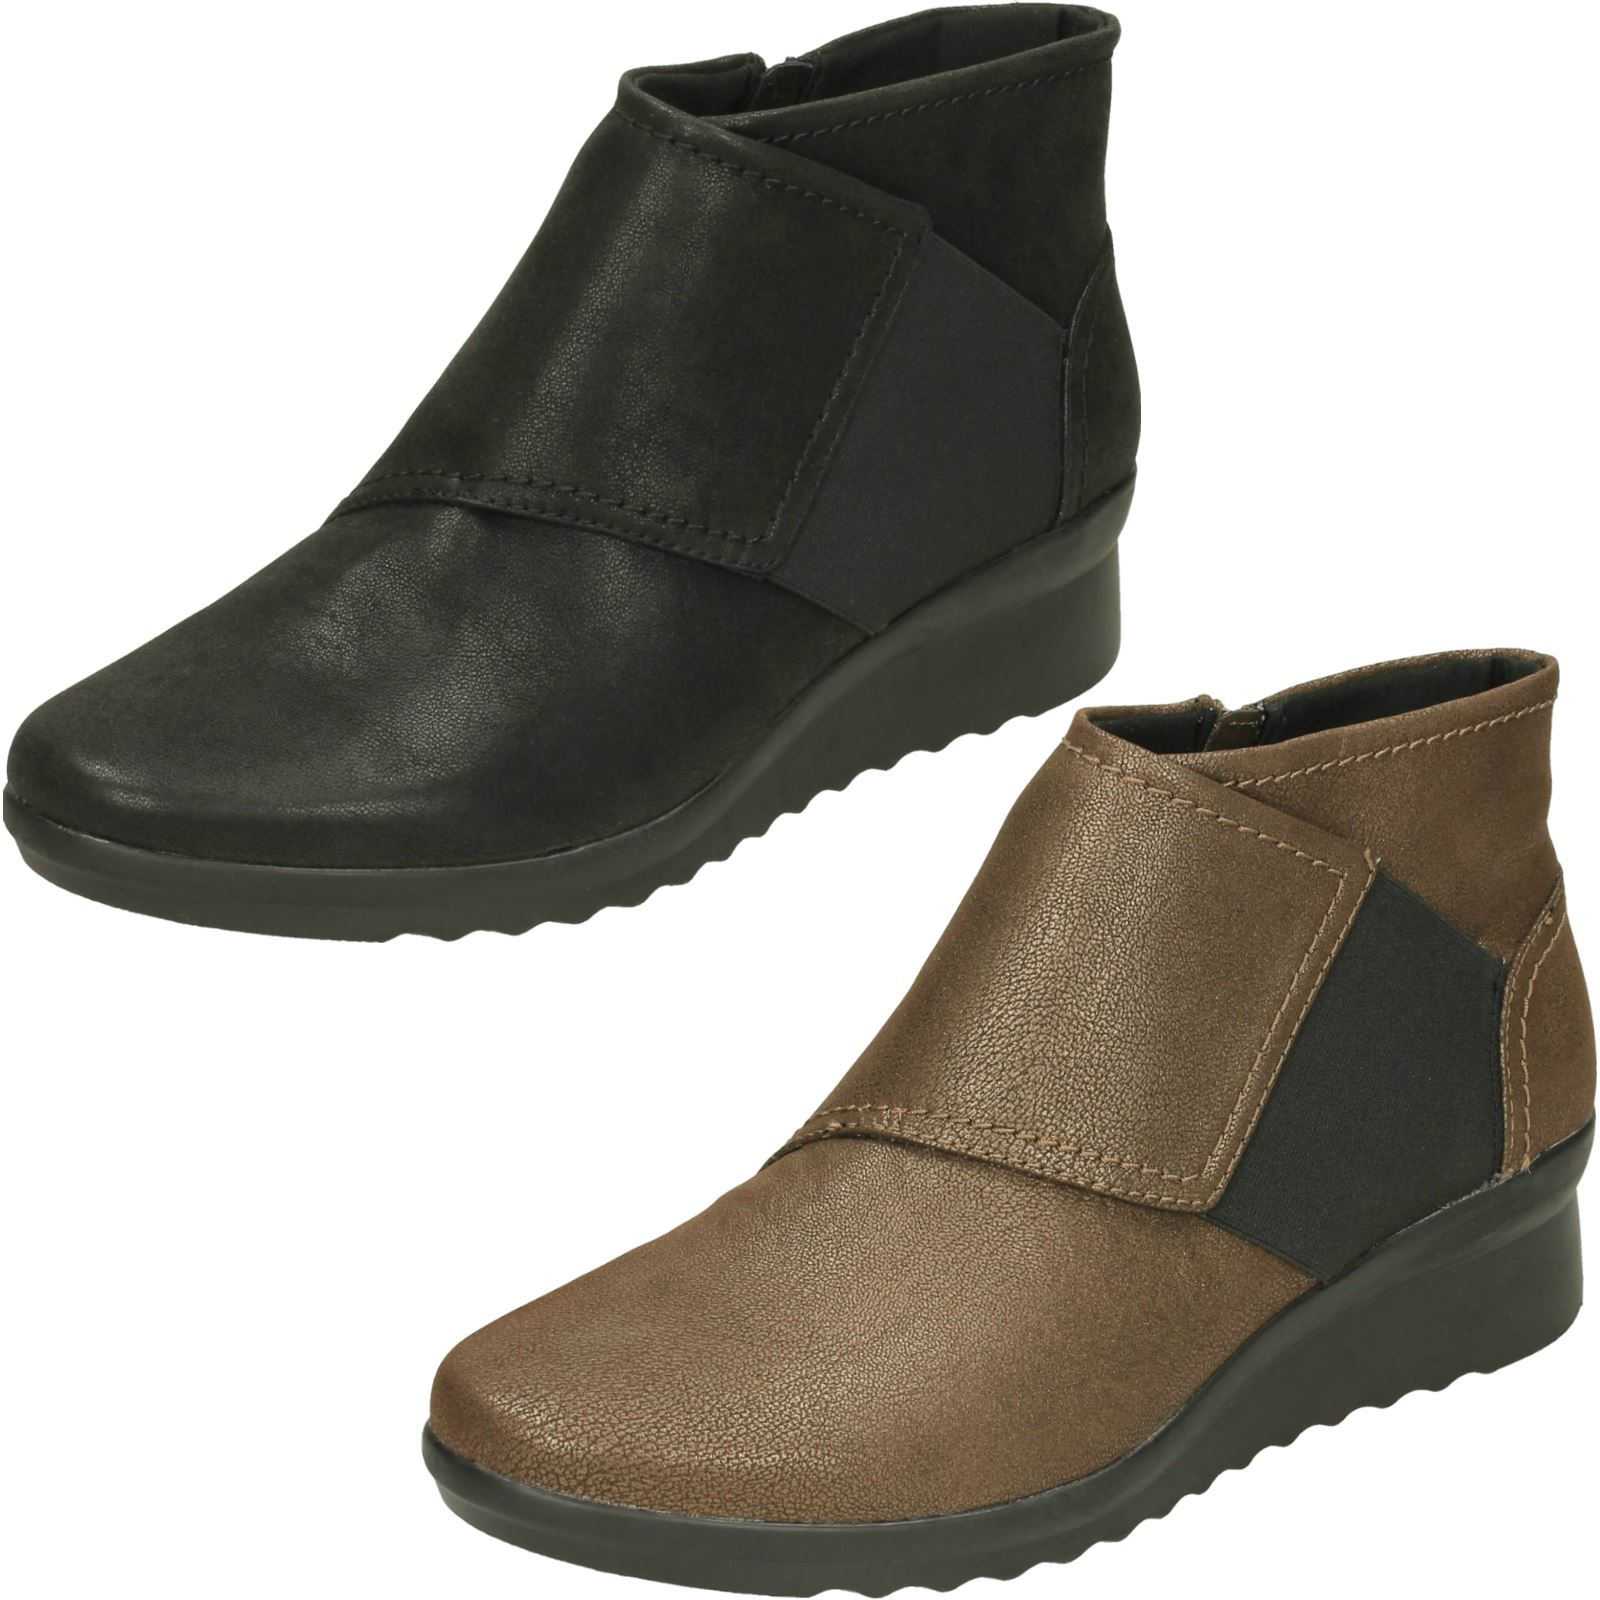 a2da02c0c43 Image is loading Ladies-Clarks-Caddell-Rush-Ankle-Boots